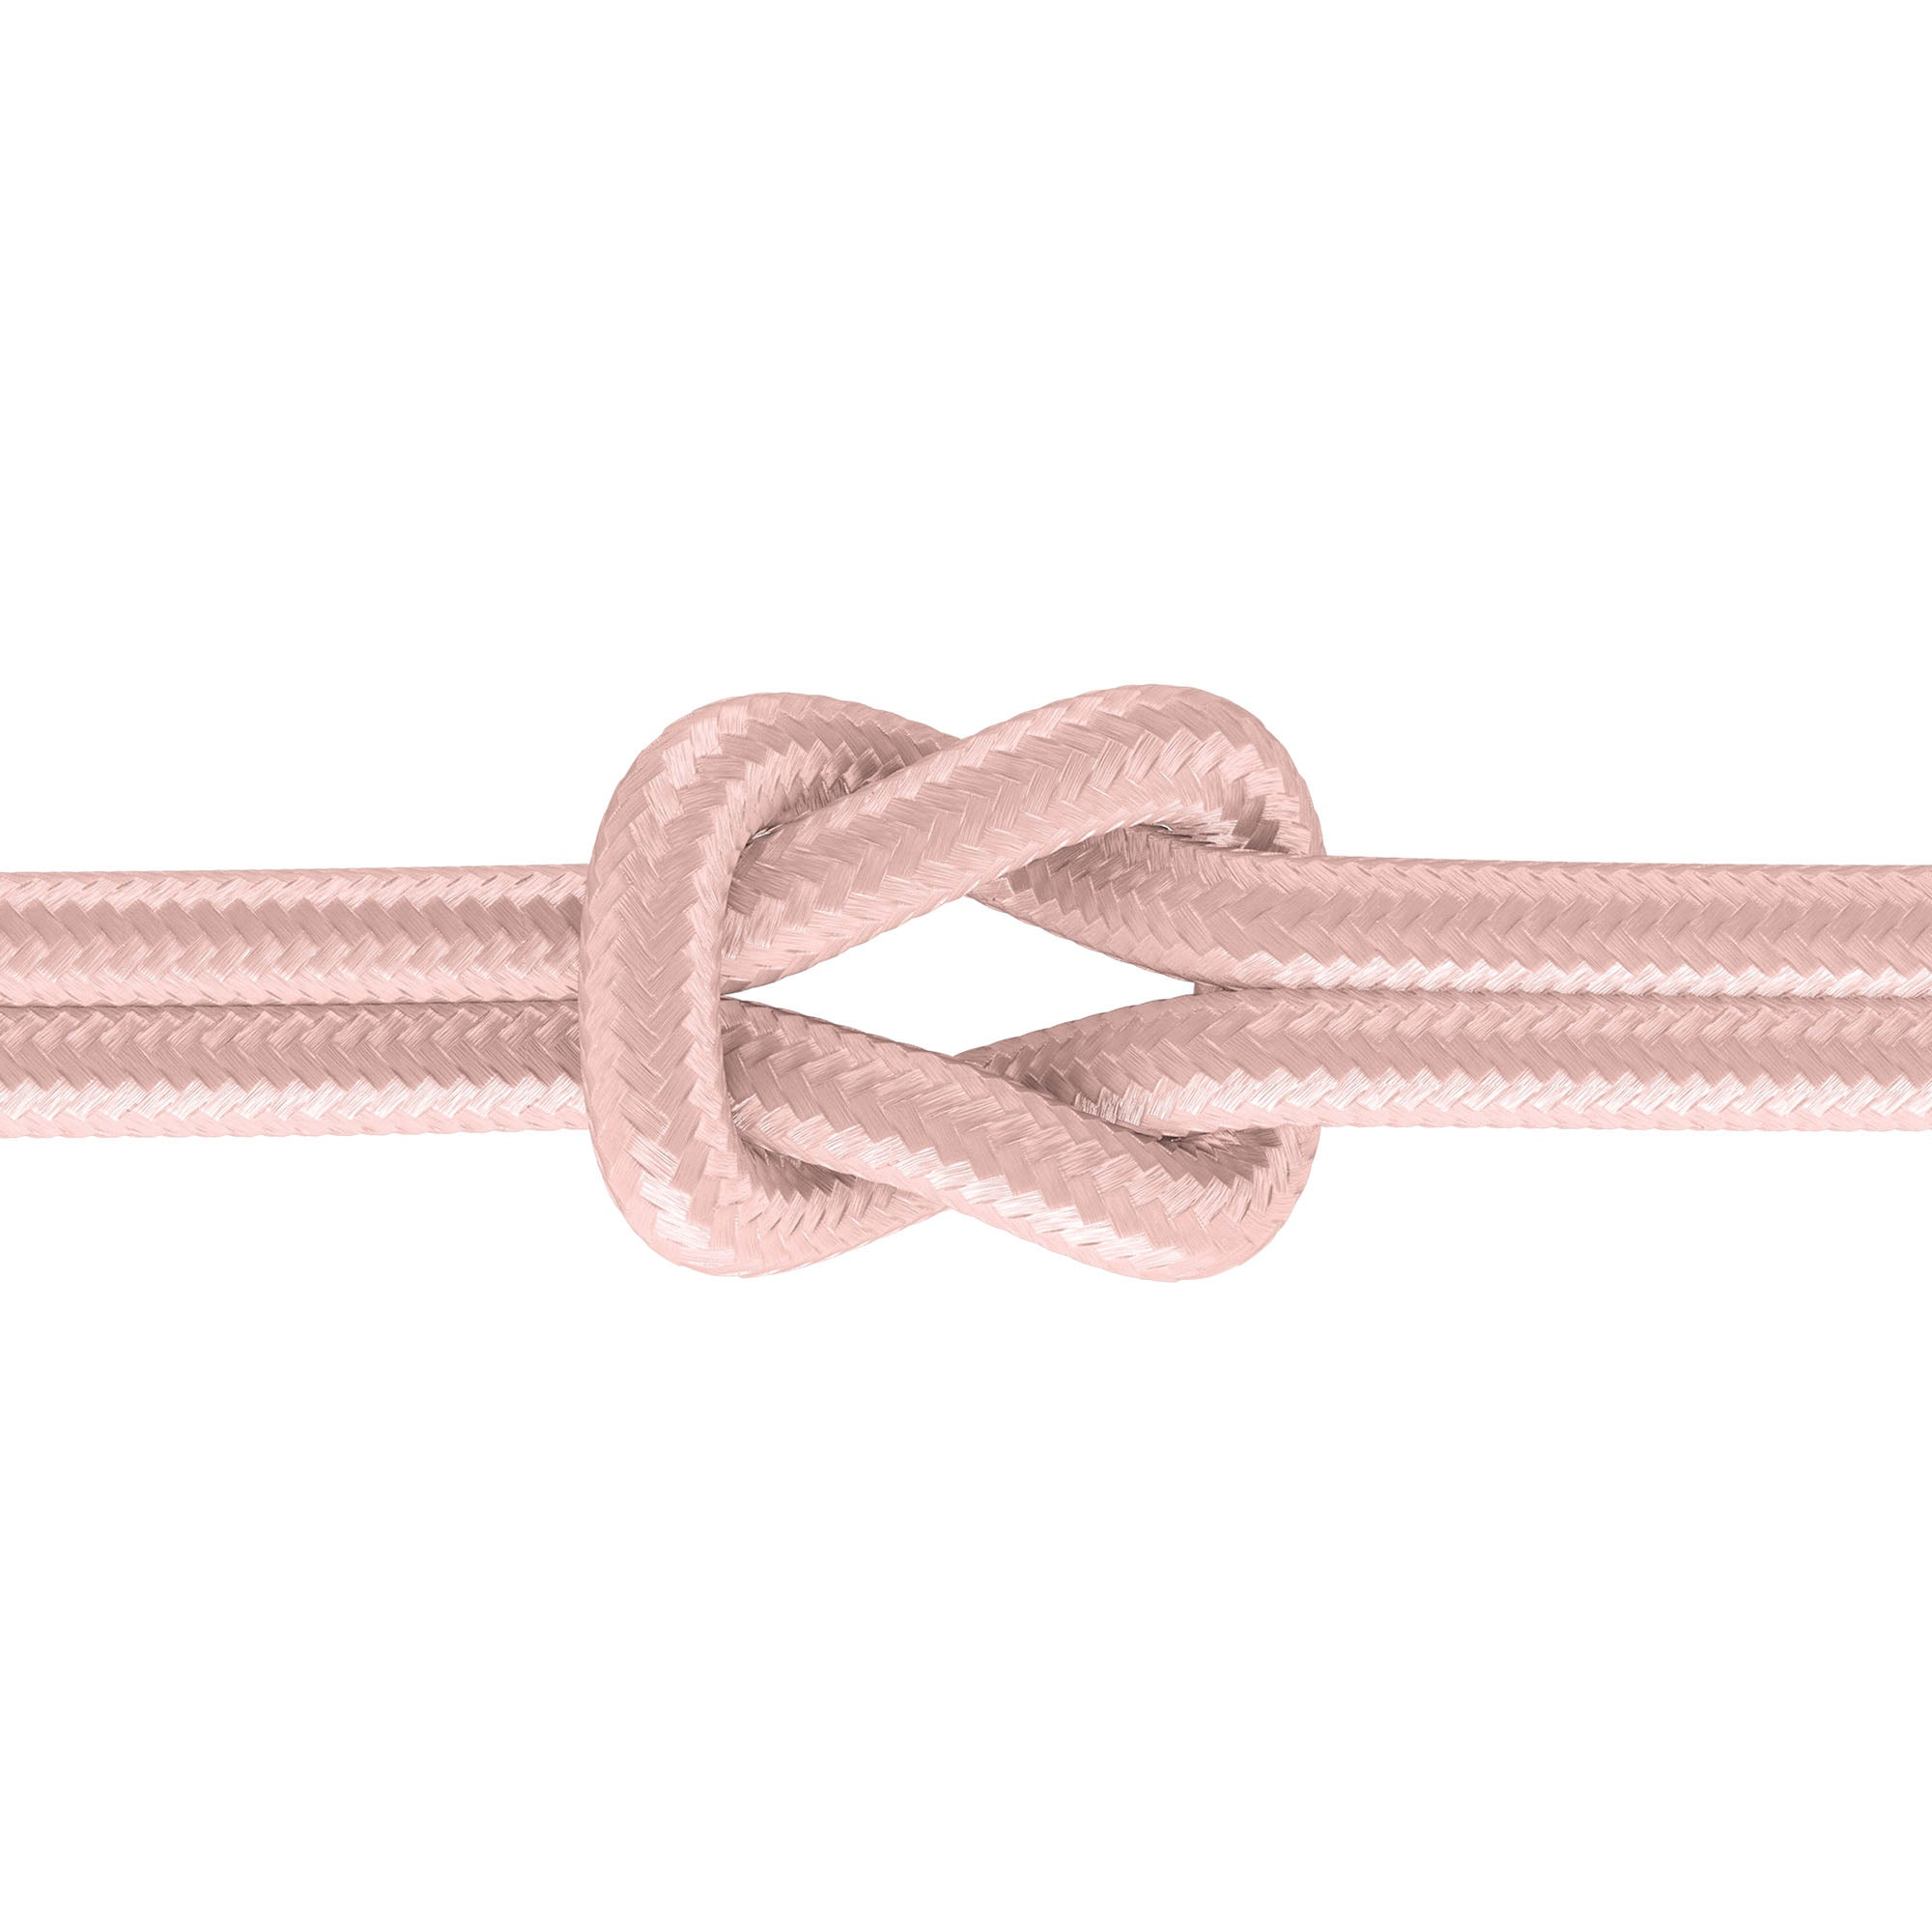 6ft Kevlar Lightning (PD) Nylon Braided Cable - Rose Gold